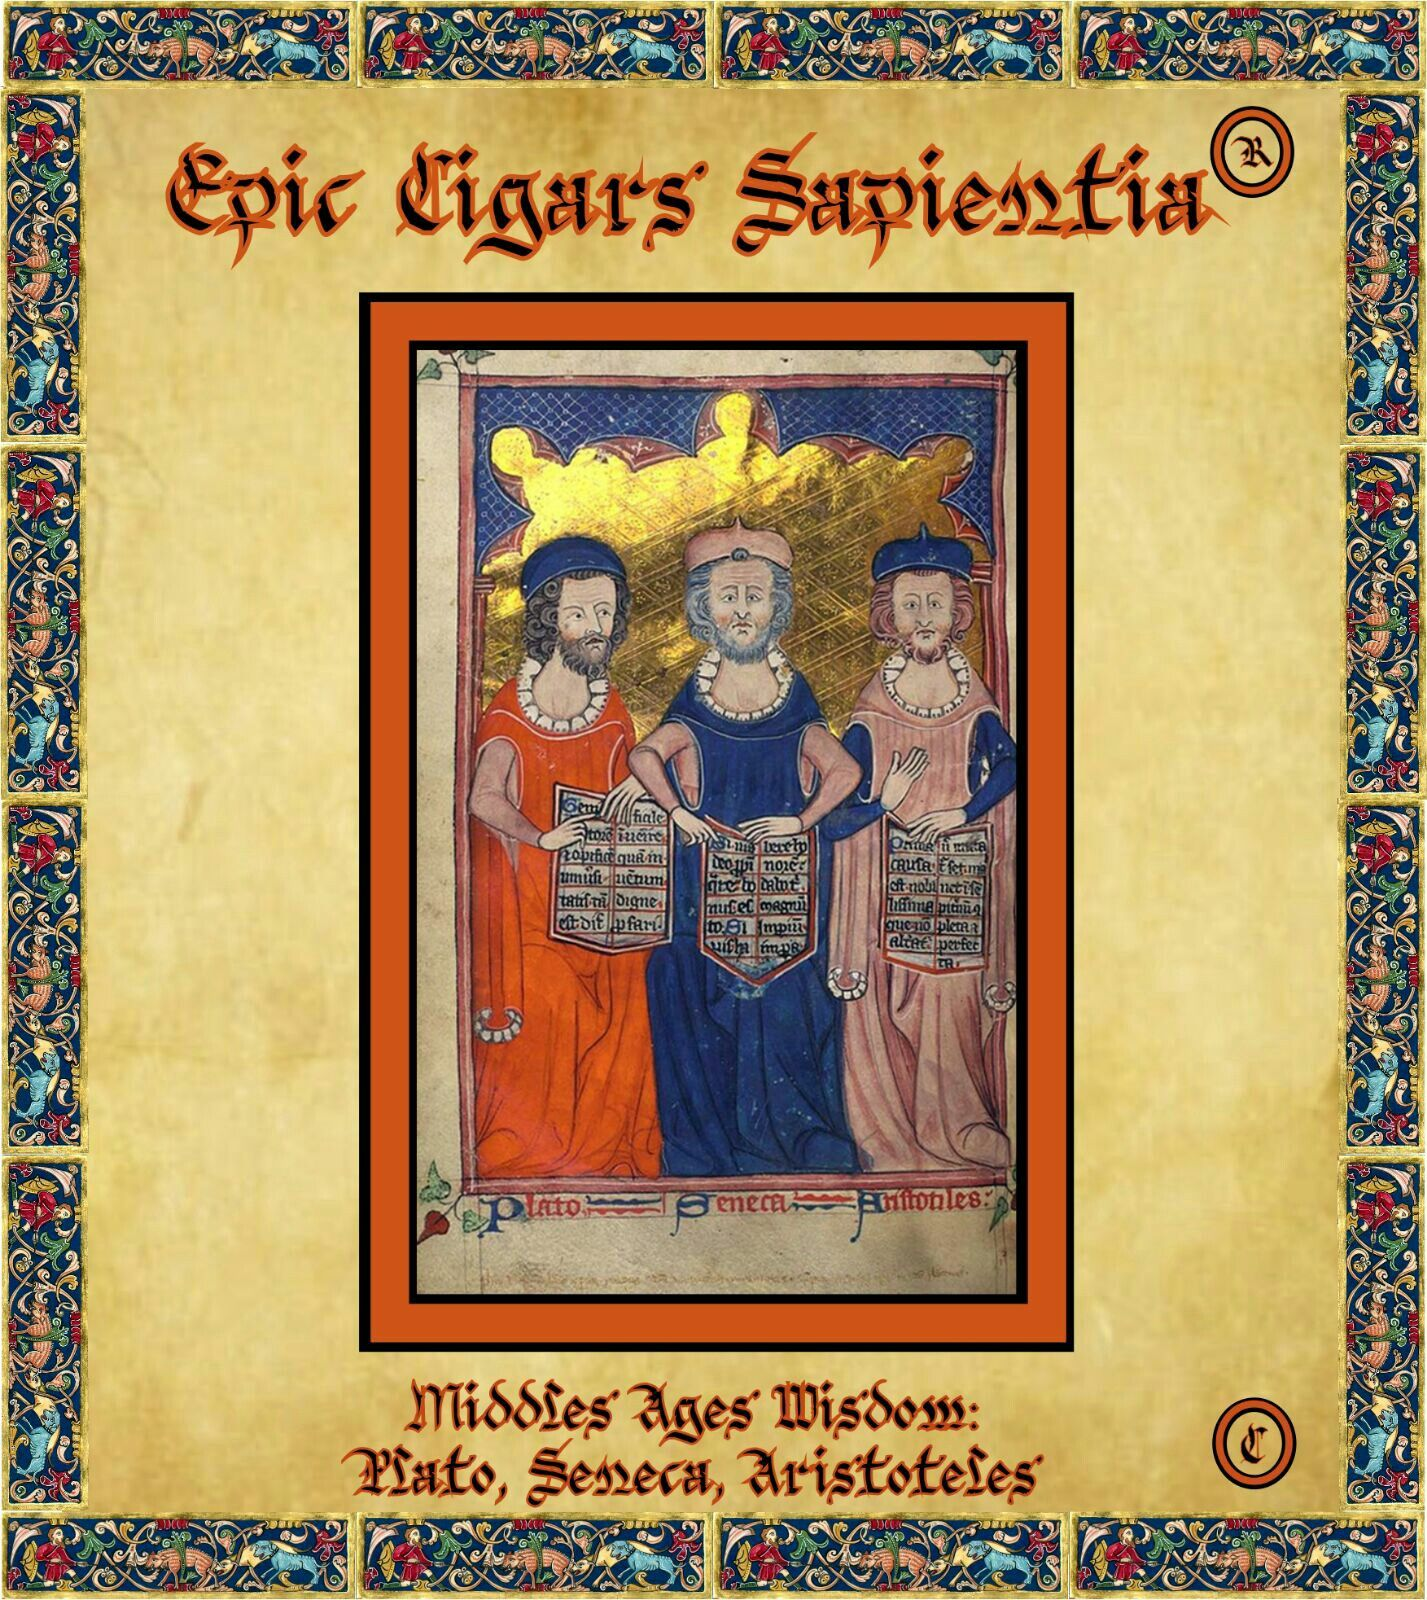 epic cigarsa cigars templar knights chronicle sapientia middle